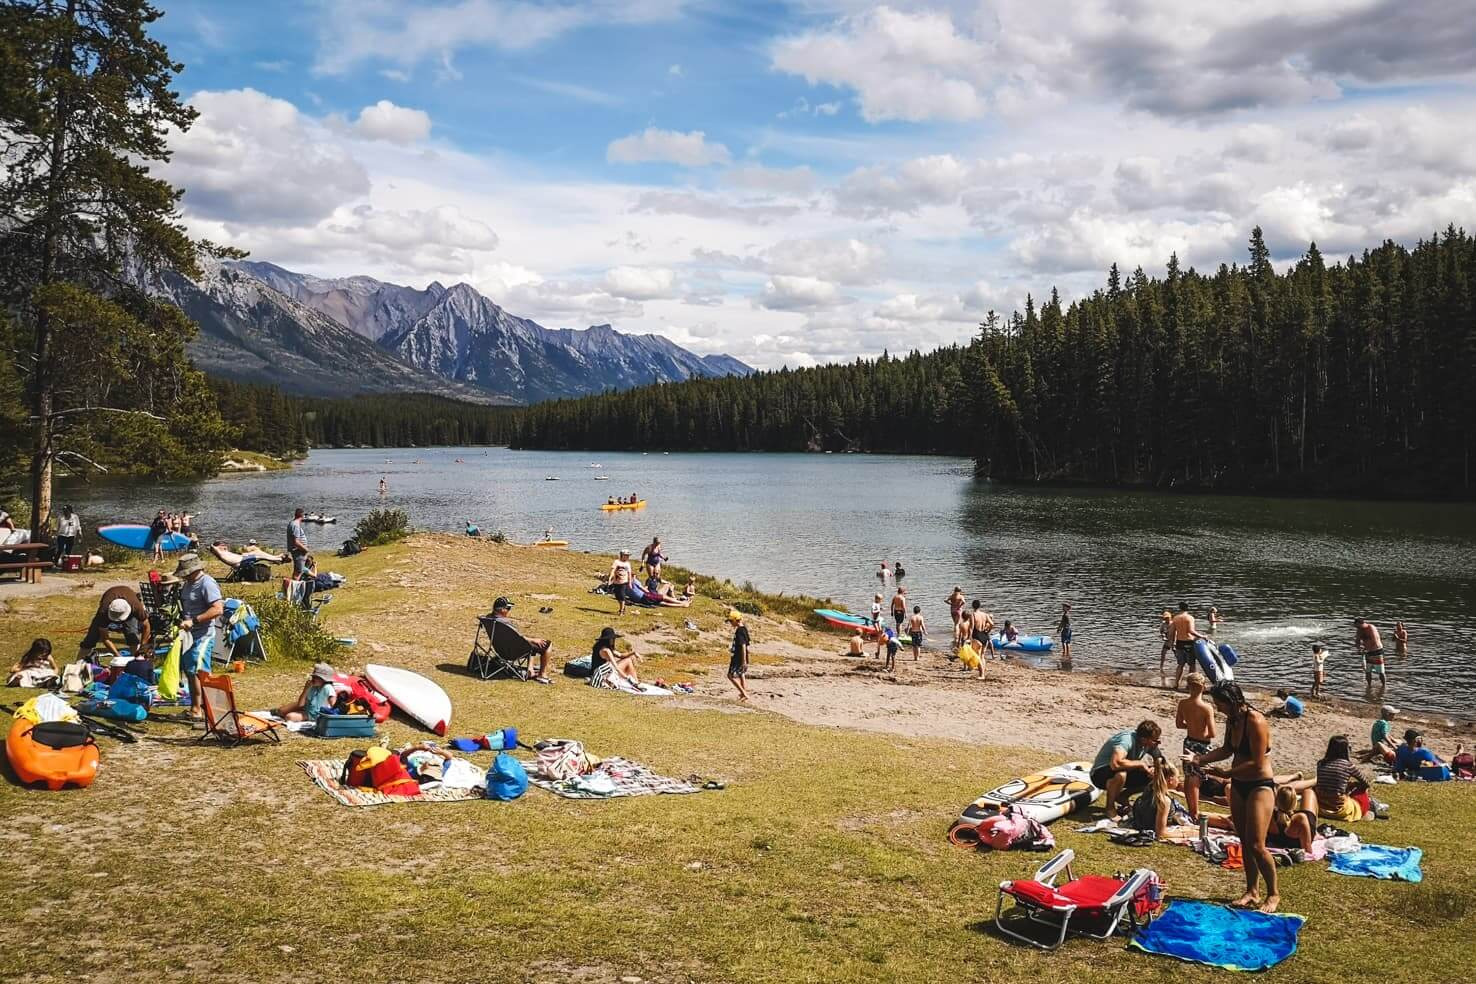 100 things to do in Banff National Park, Canada - Relax at Johnson Lake or jump in for a swim